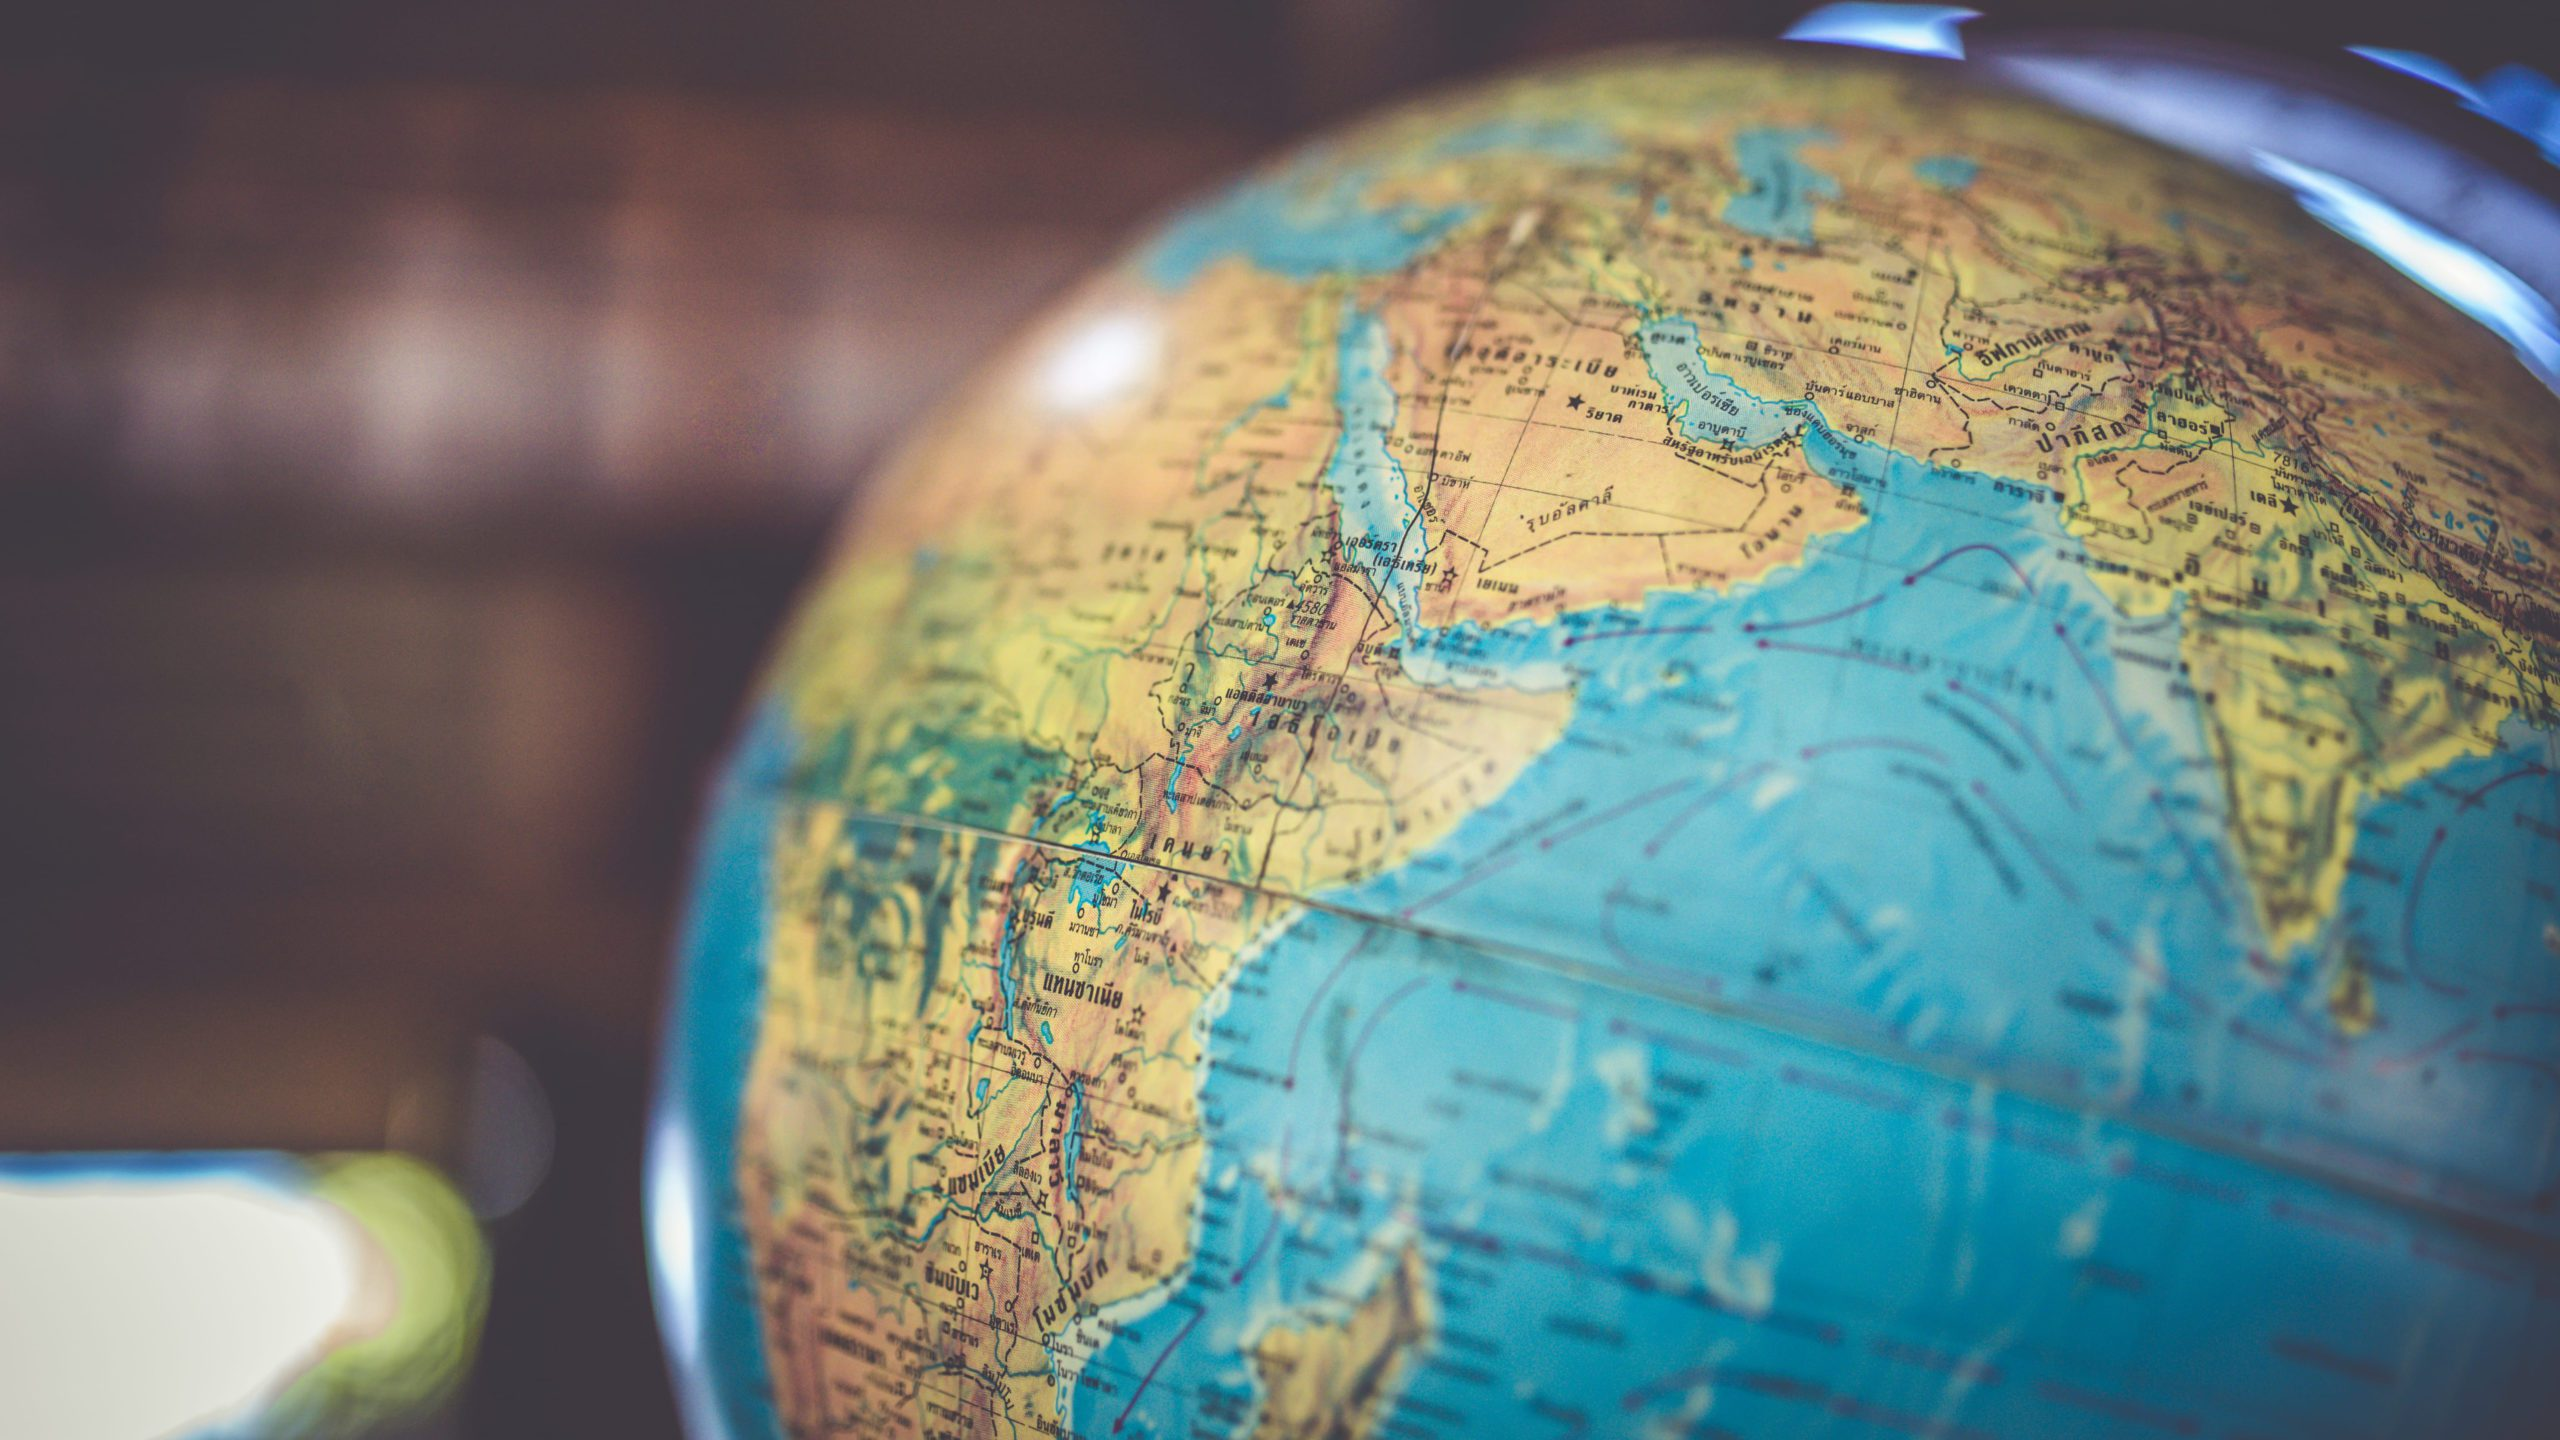 Globalisation: What Are the Pros and Cons for Expanding Businesses?